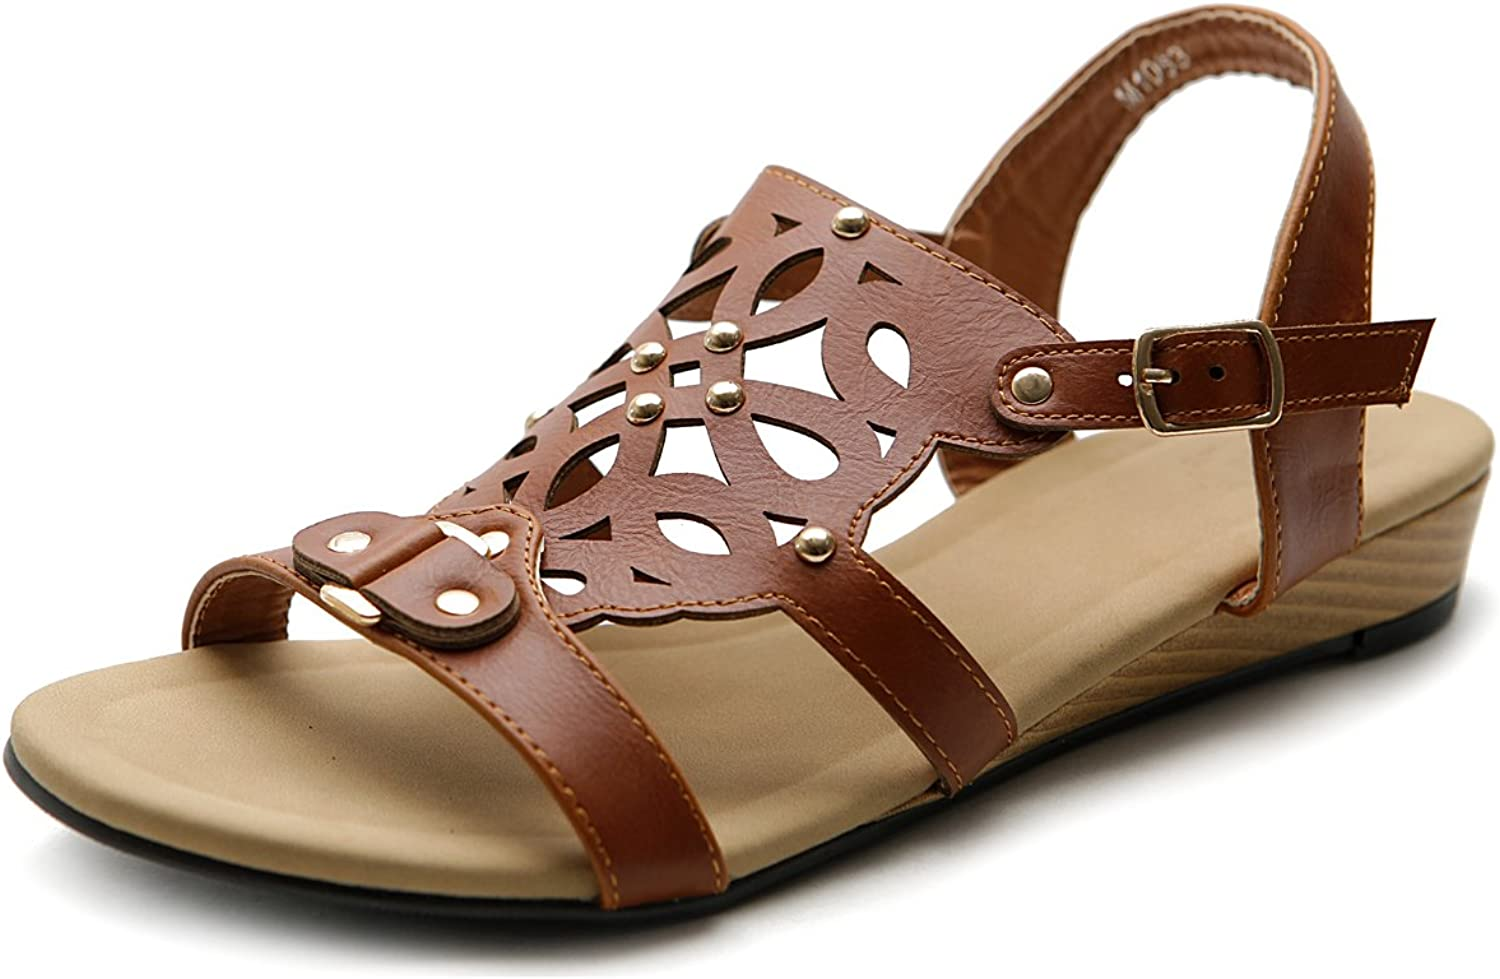 Ollio Women's shoes Cut Out Strappy Low Heel Wedge Sandal